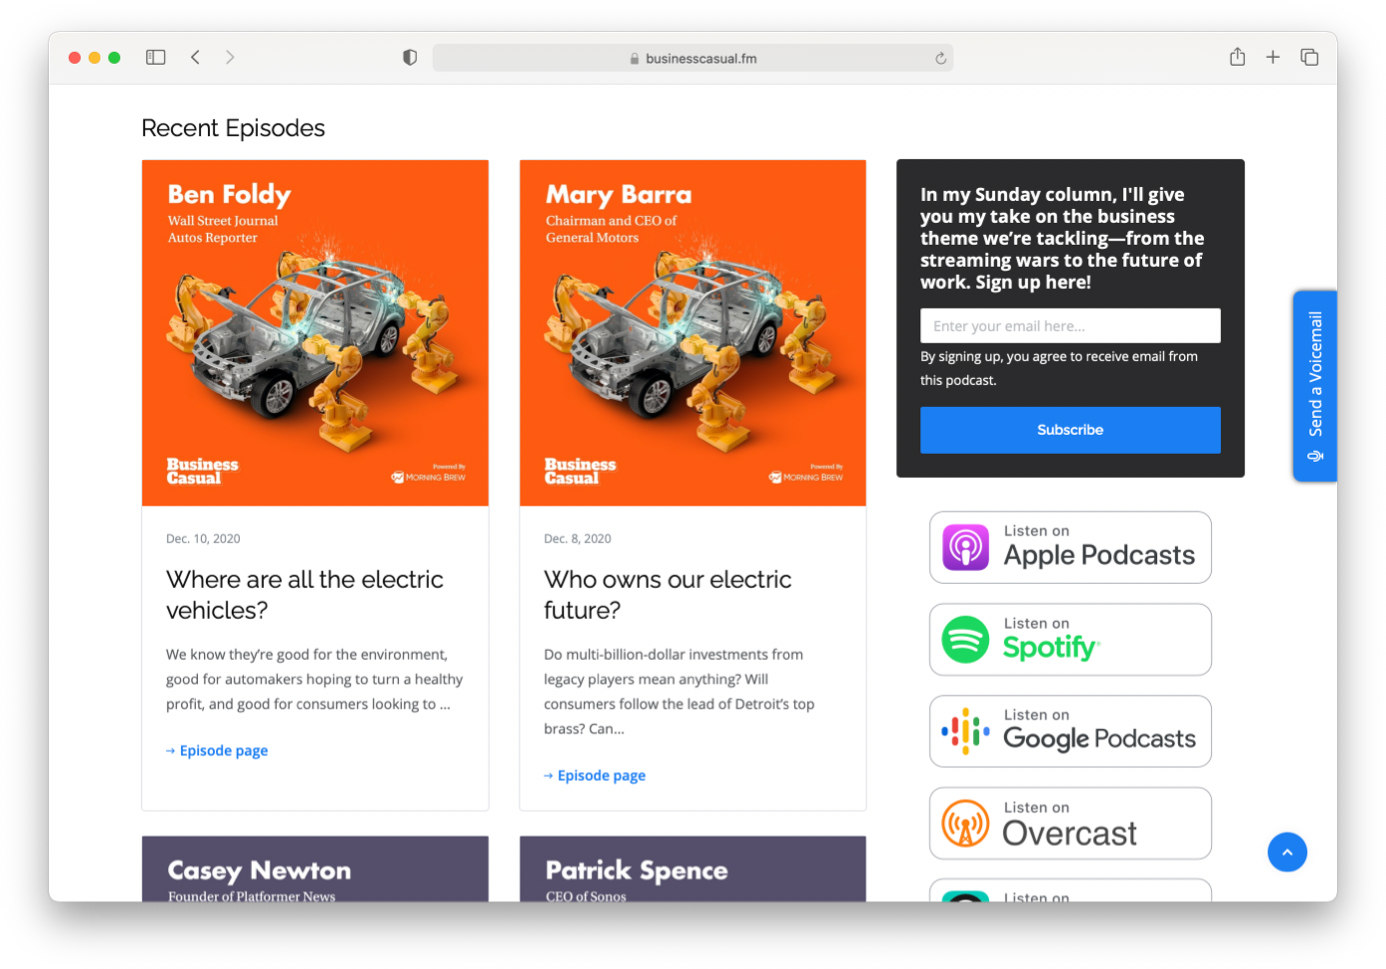 an example Podpage podcast website